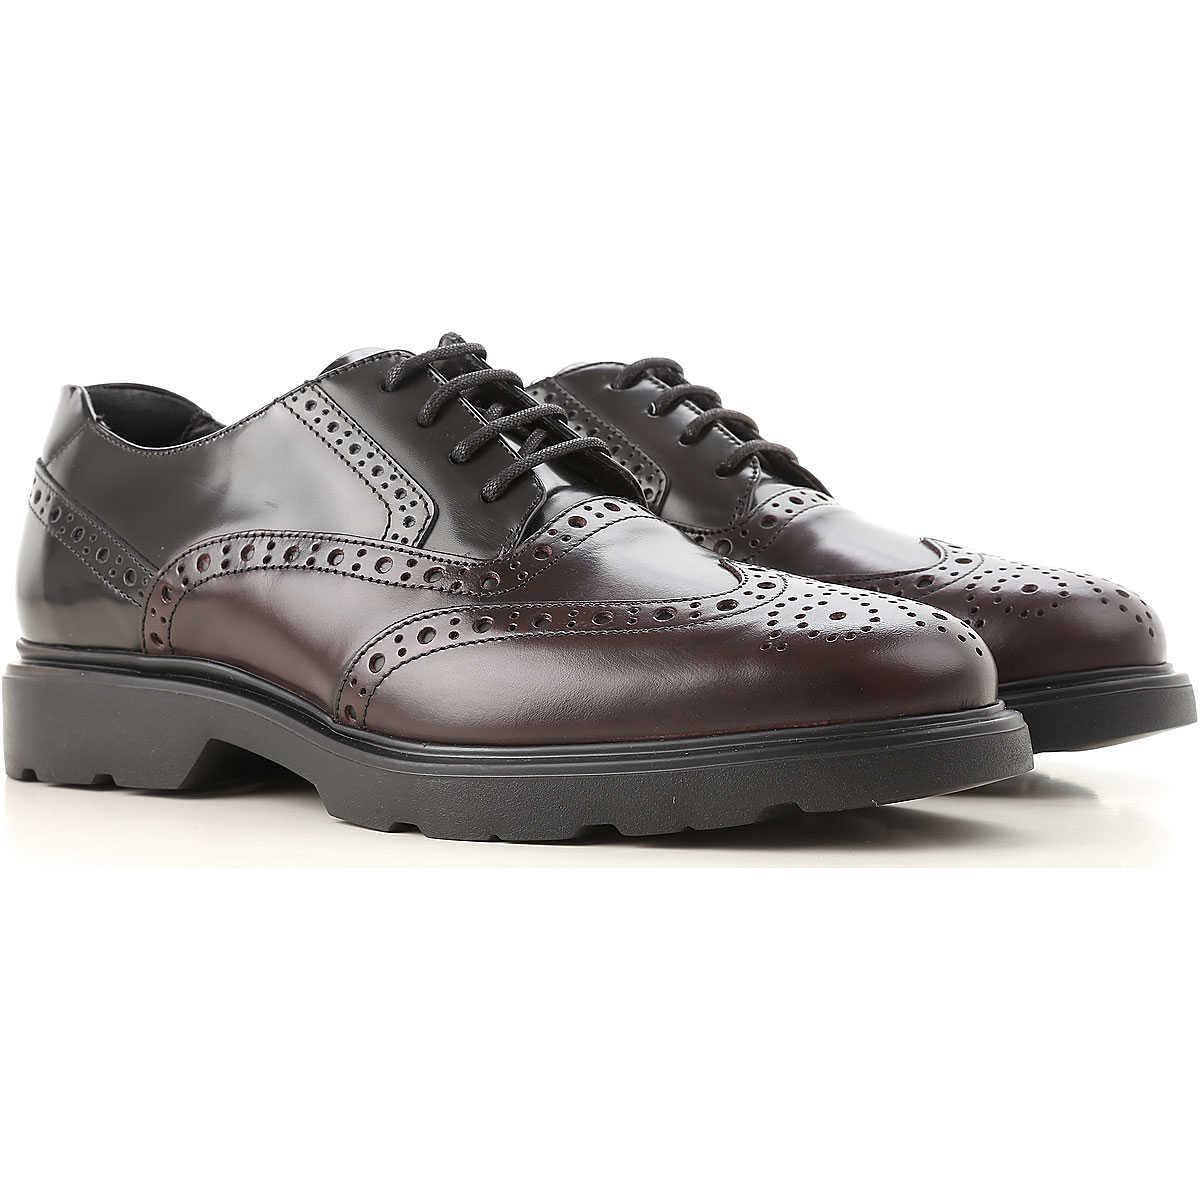 Hogan Lace Up Shoes for Men Oxfords 10 10.5 11 5.5 6 6.5 7 8 8.5 9 9.5 Derbies and Brogues On Sale UK - GOOFASH